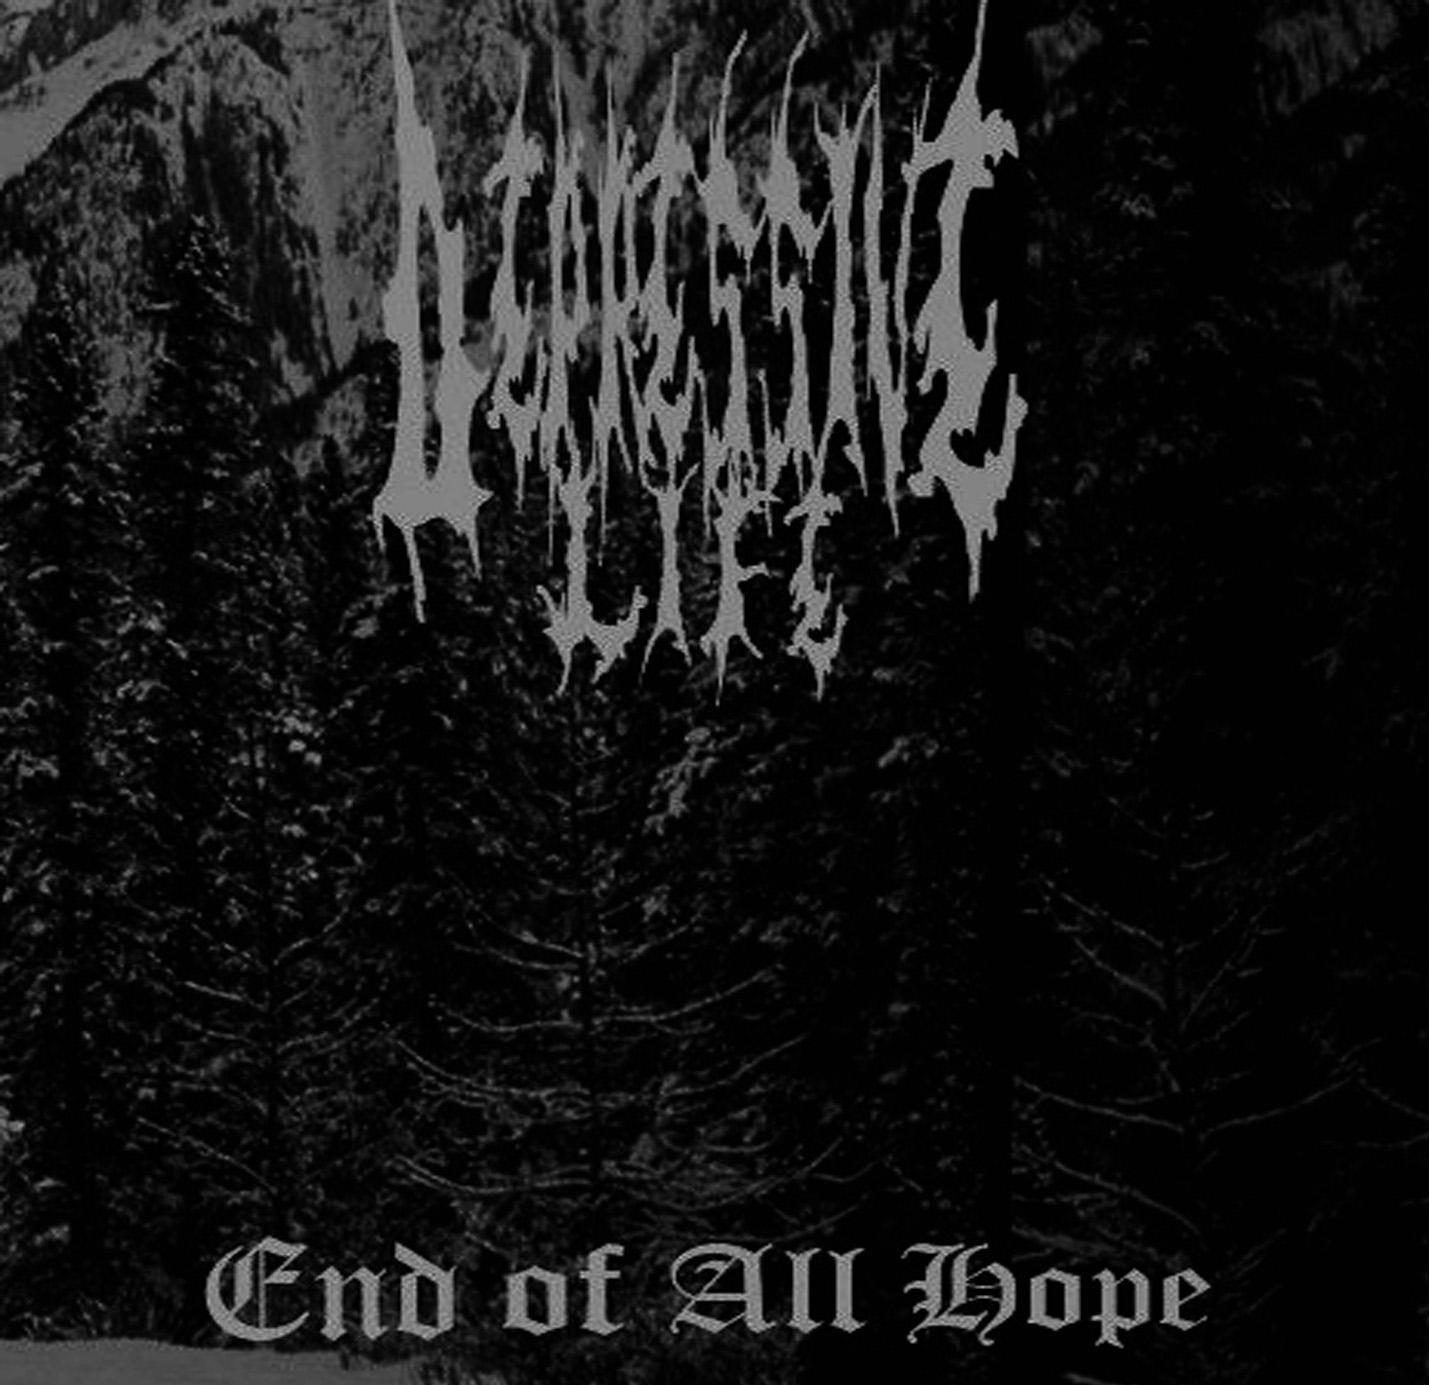 depressive-black-metal Images - Frompo - 1